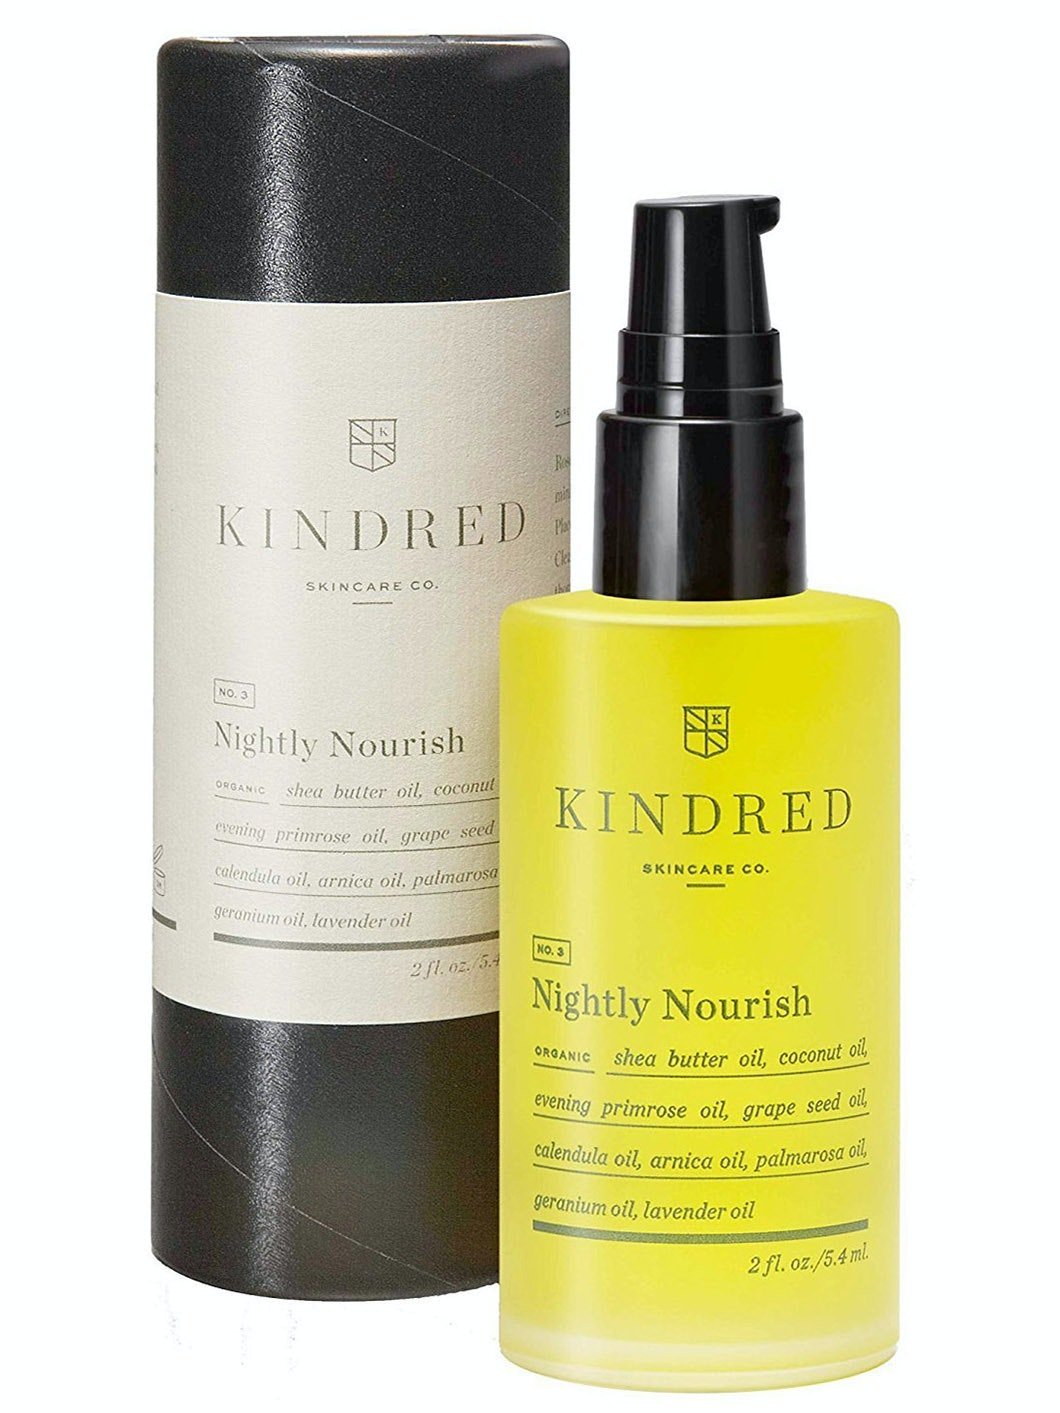 Kindred Skincare Co. Oil Cleanse